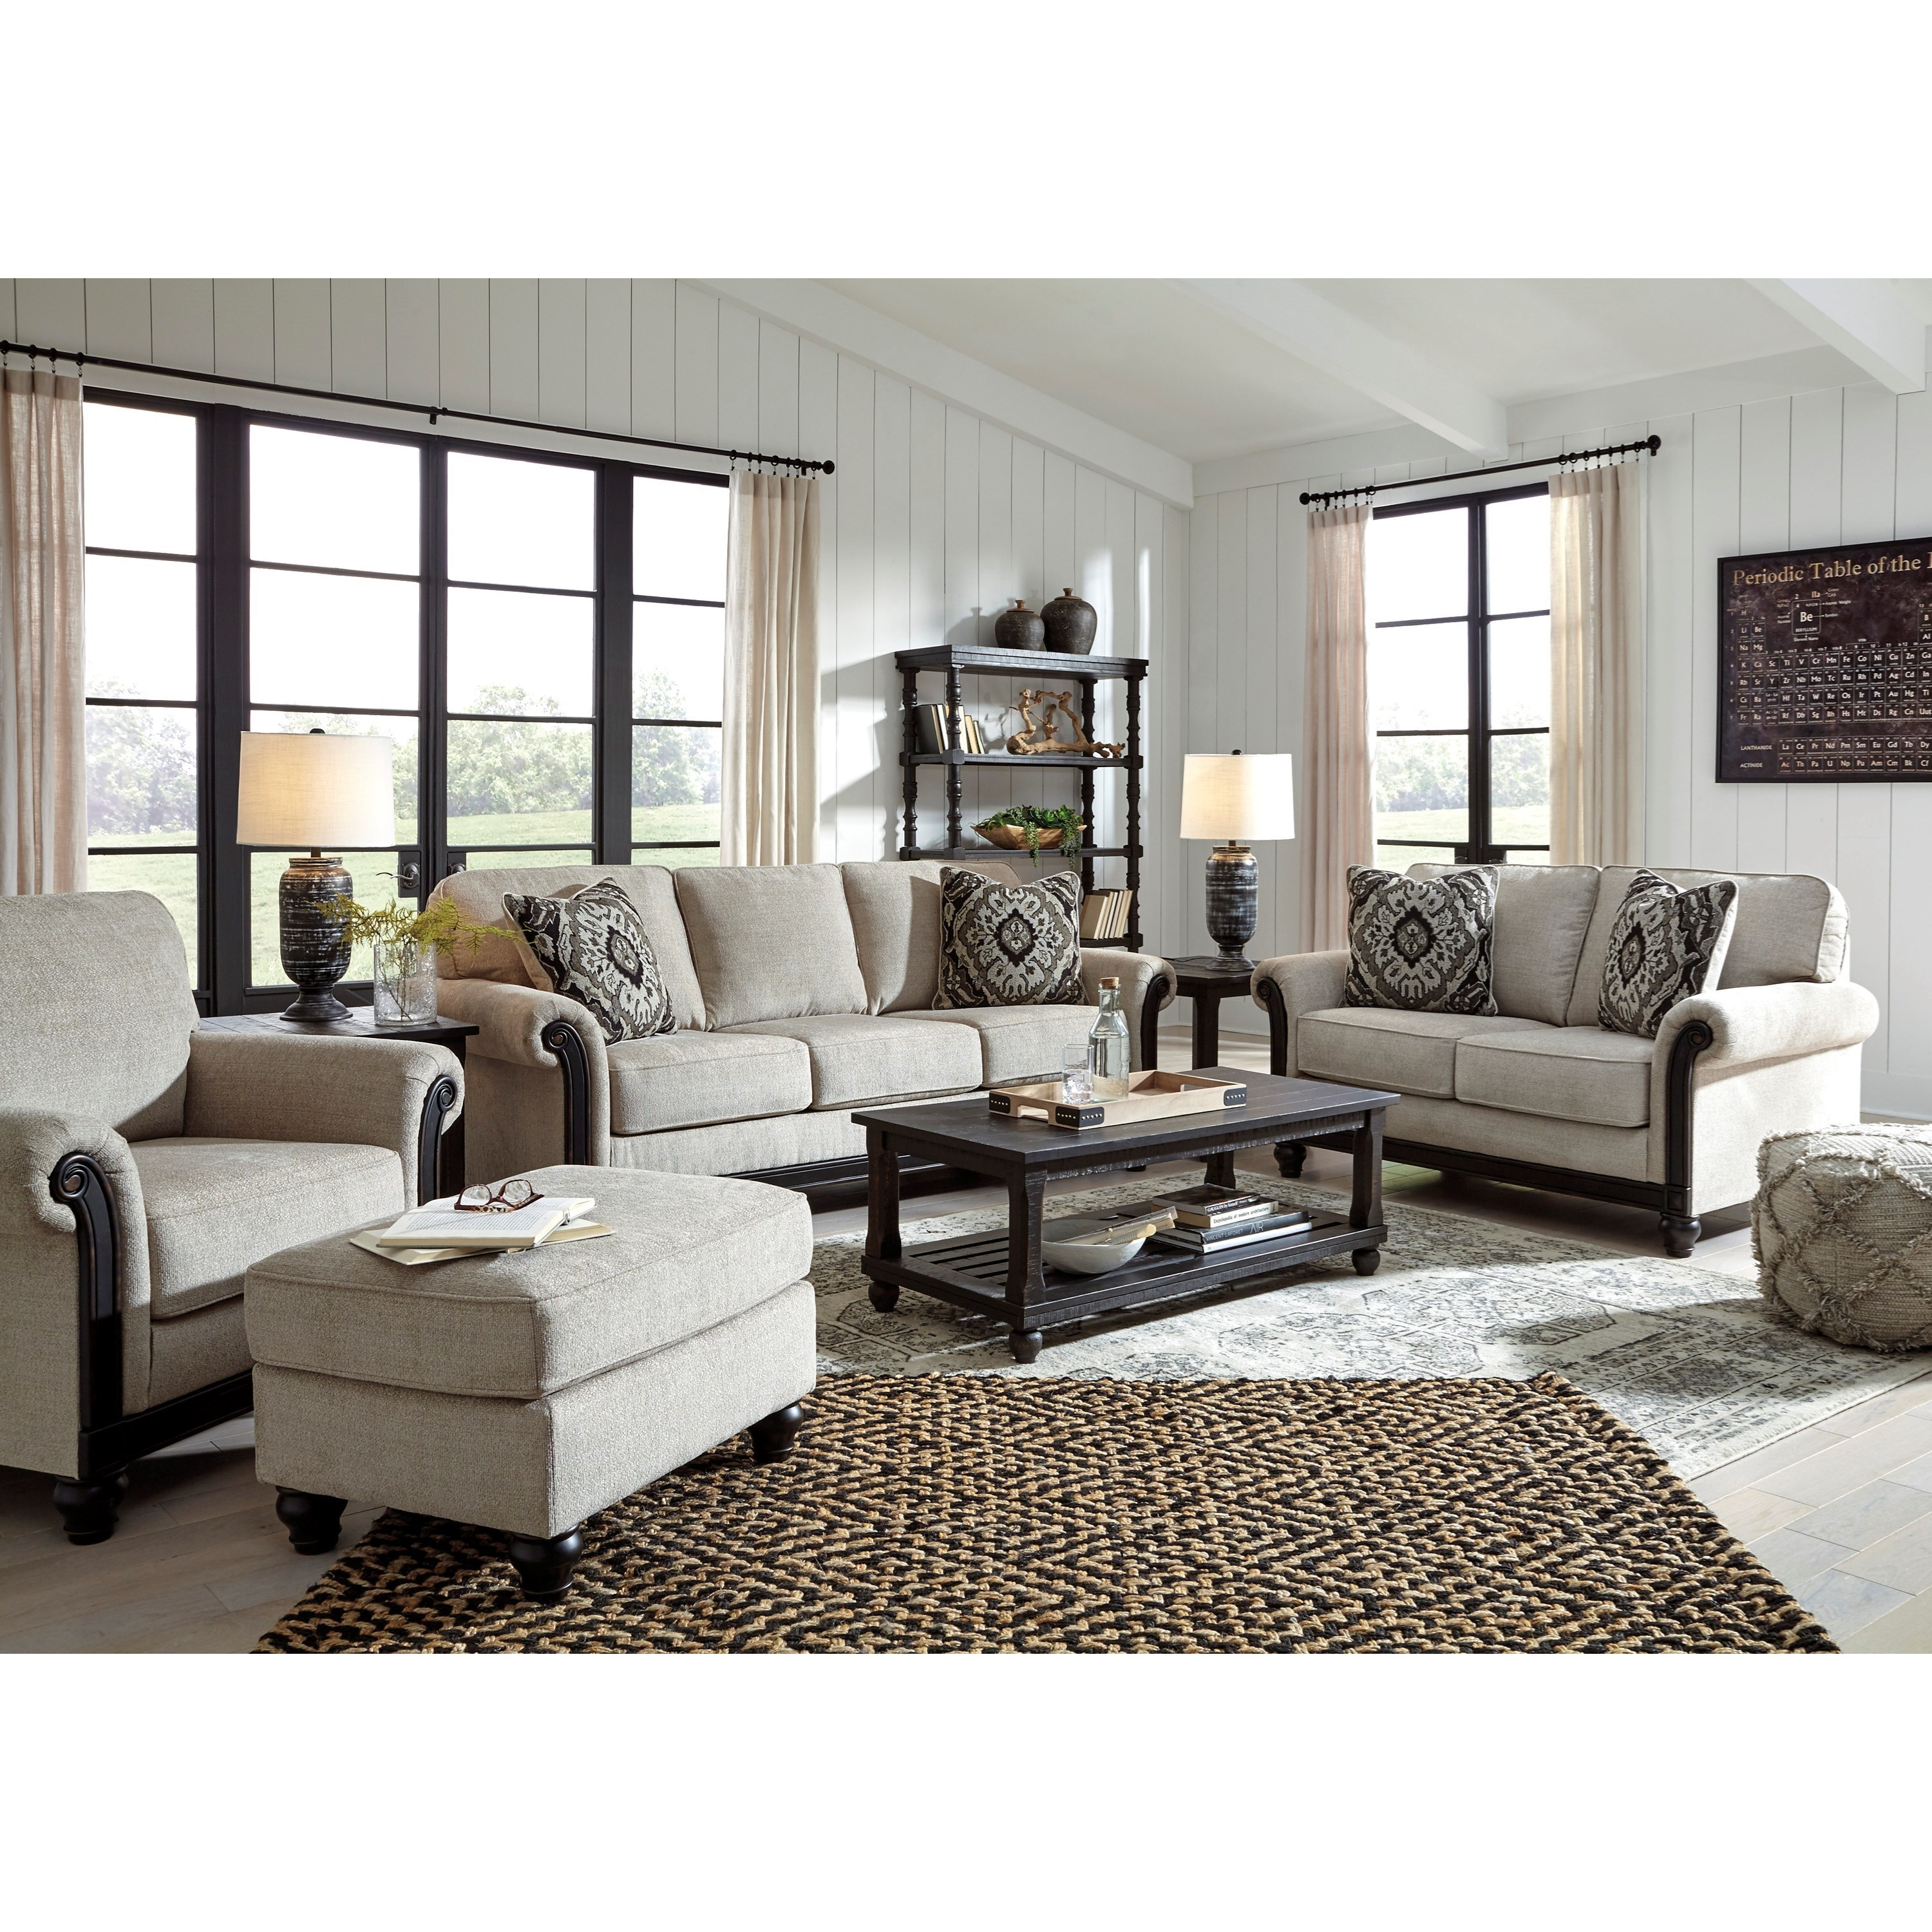 Benbrook Living Room Group by Ashley (Signature Design) at Johnny Janosik